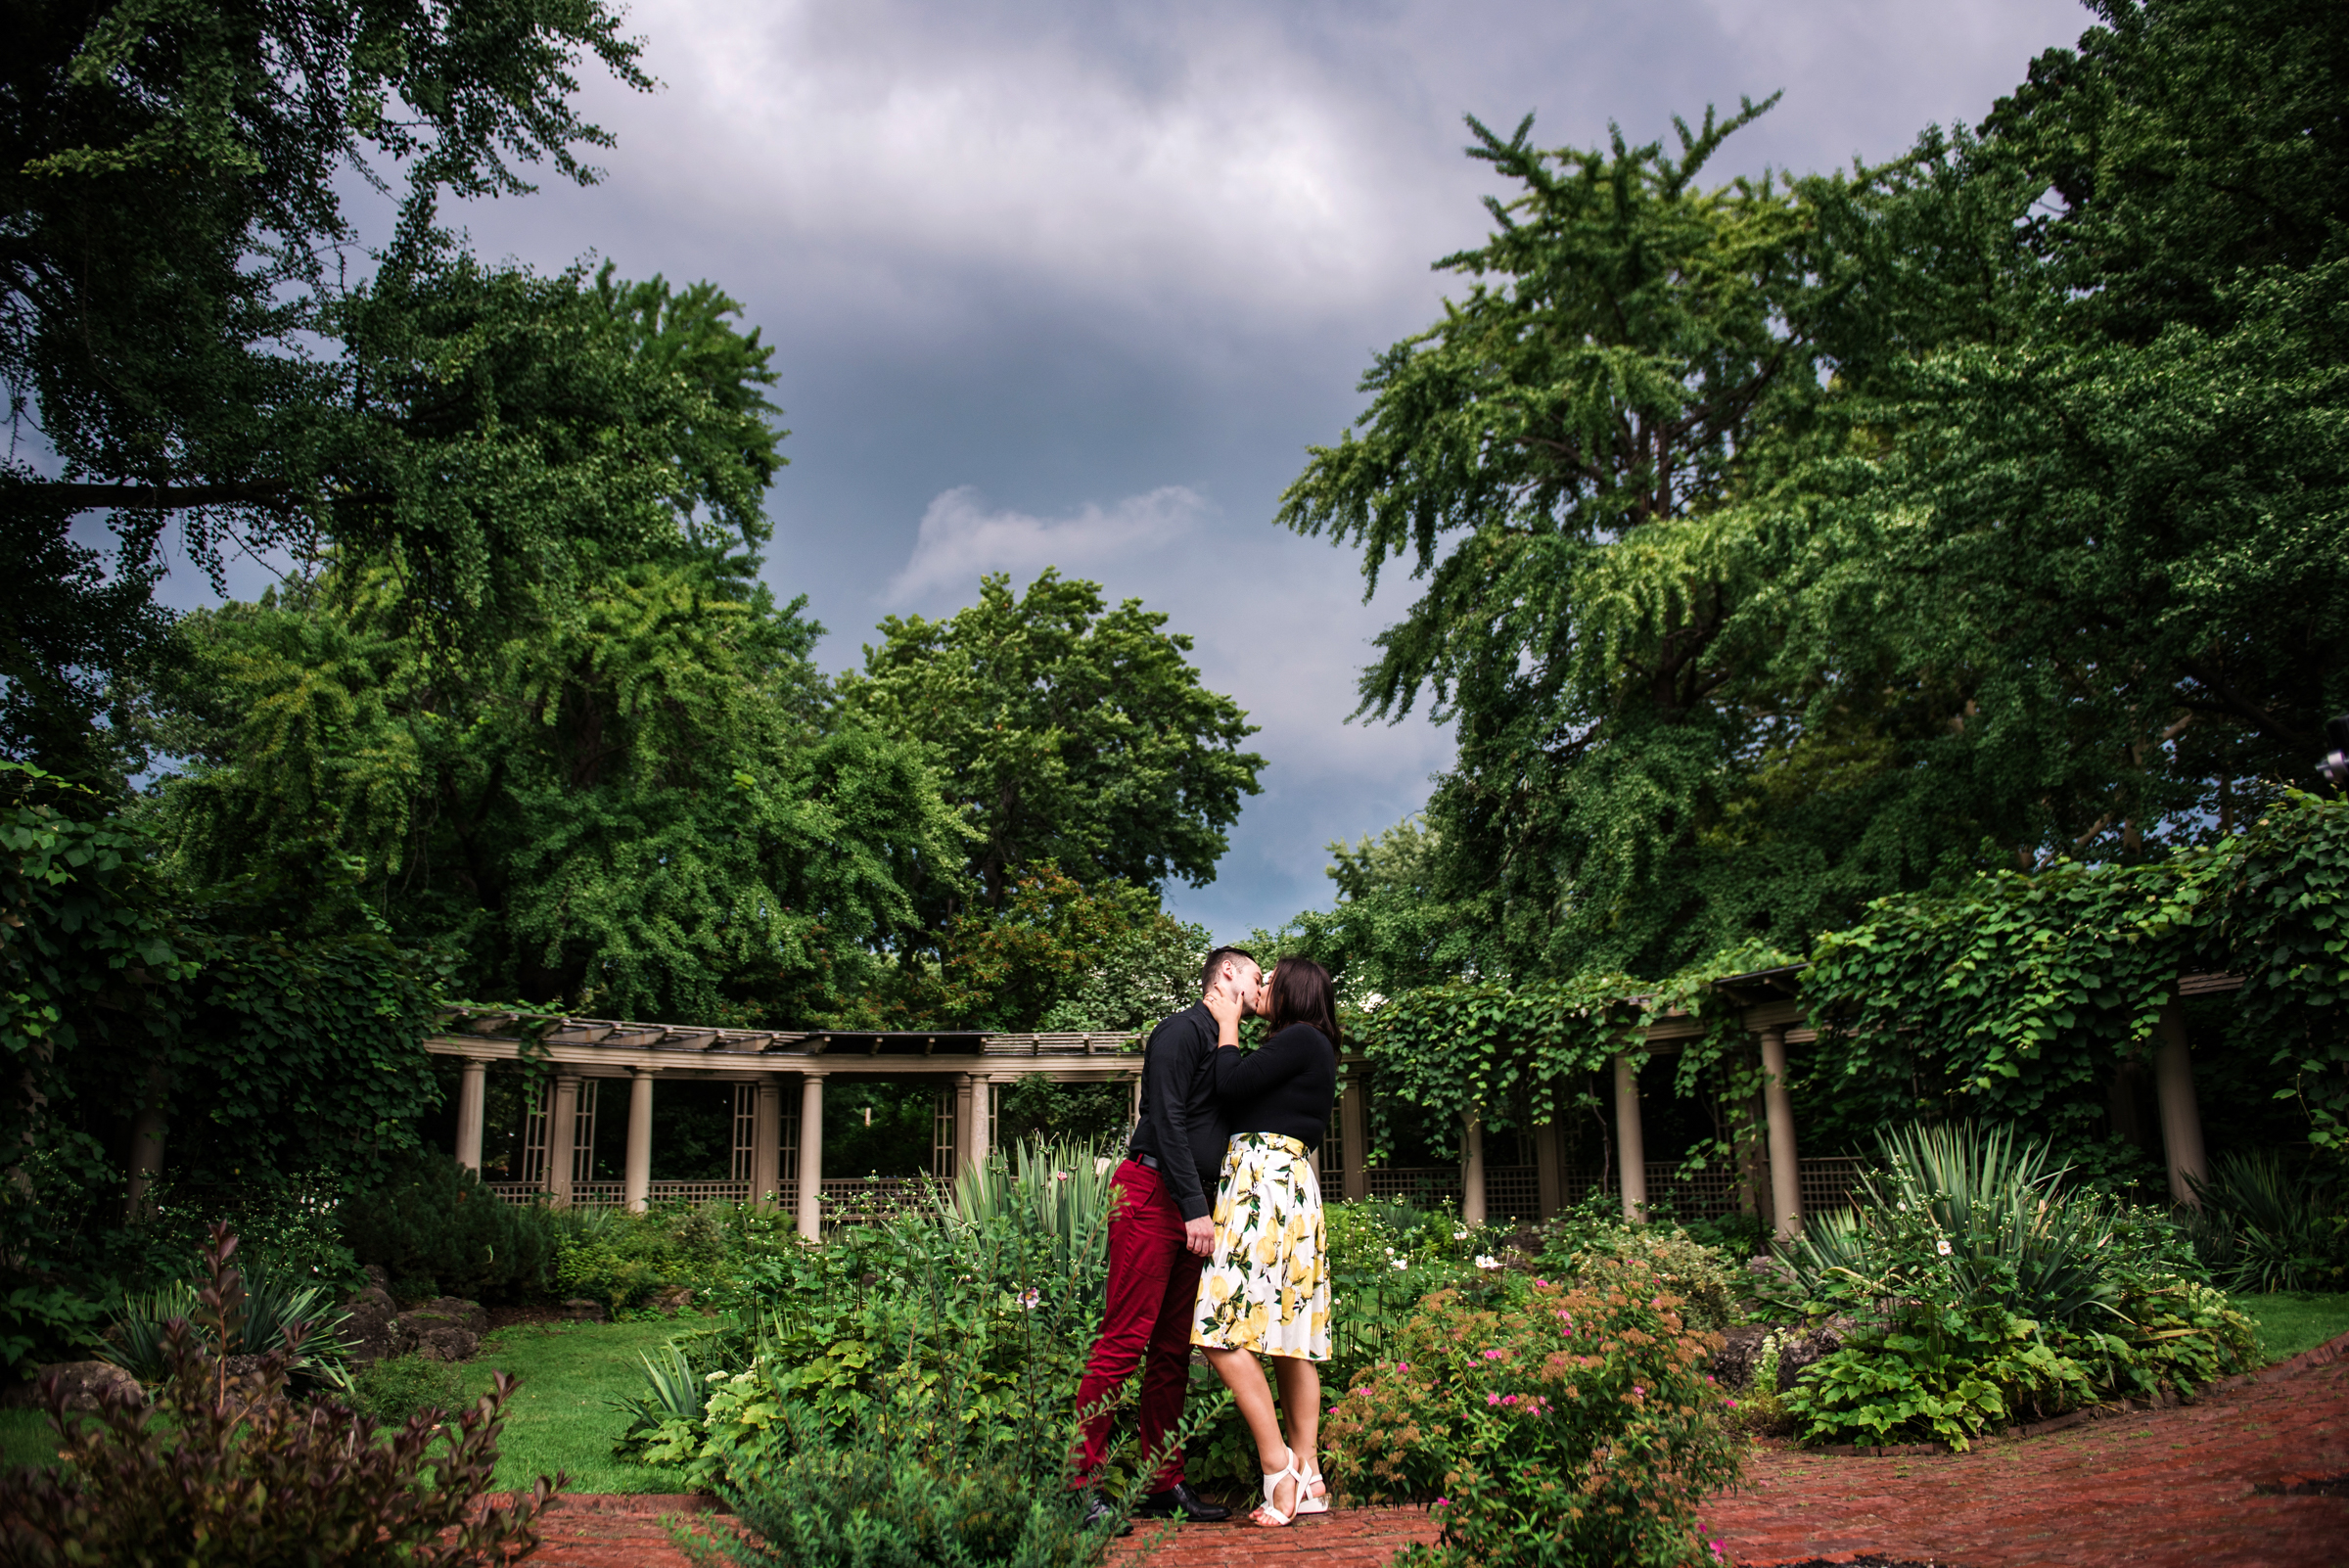 George_Eastman_House_Rochester_Engagement_Session_JILL_STUDIO_Rochester_NY_Photographer_DSC_6421.jpg